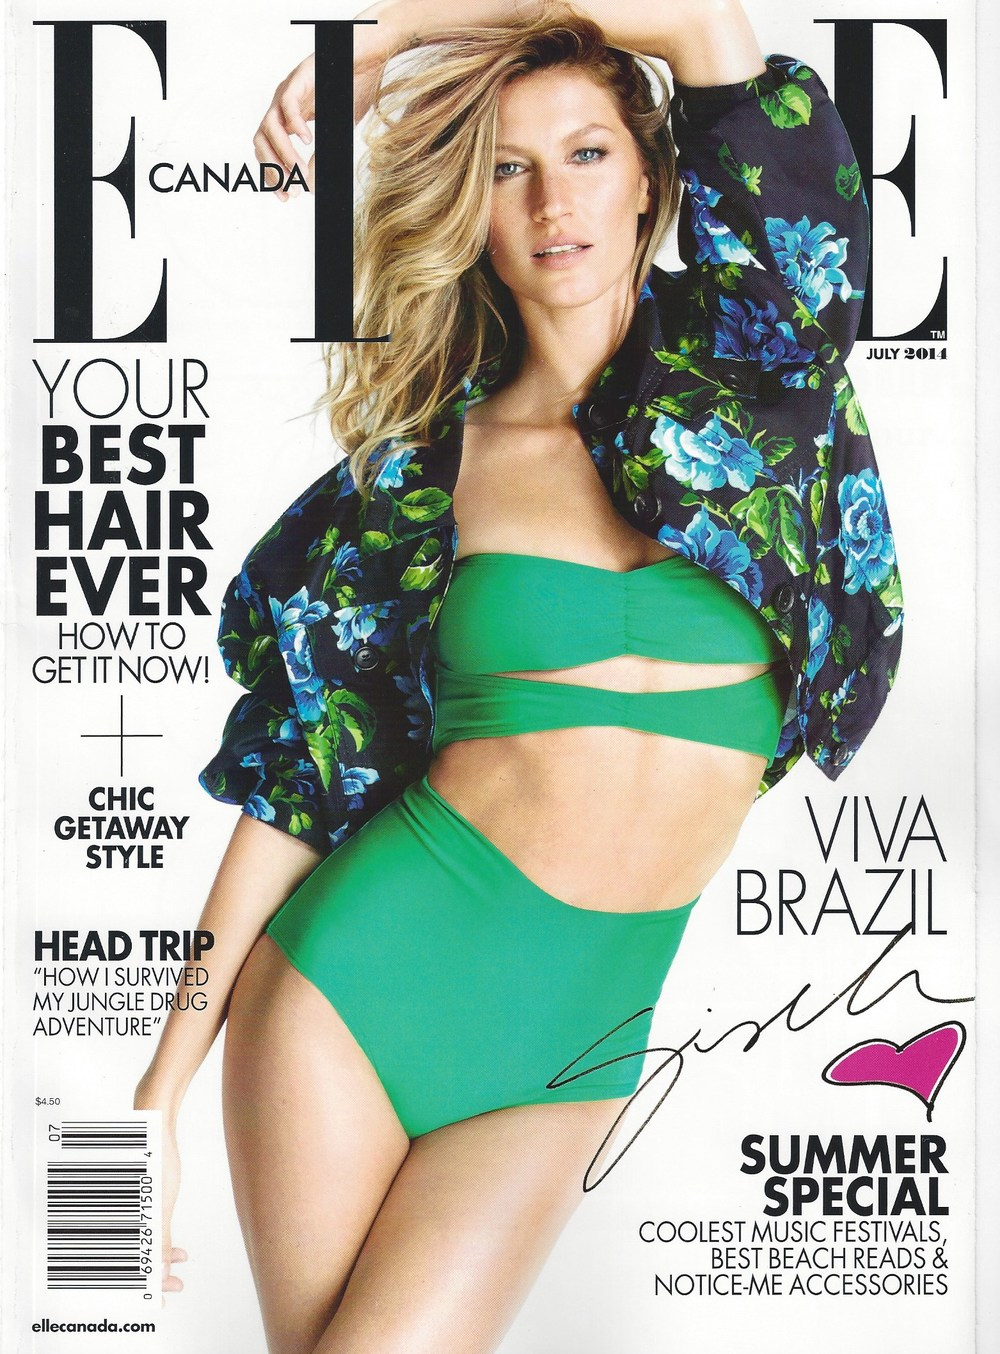 ElleCanada_COVER_July2014.jpeg